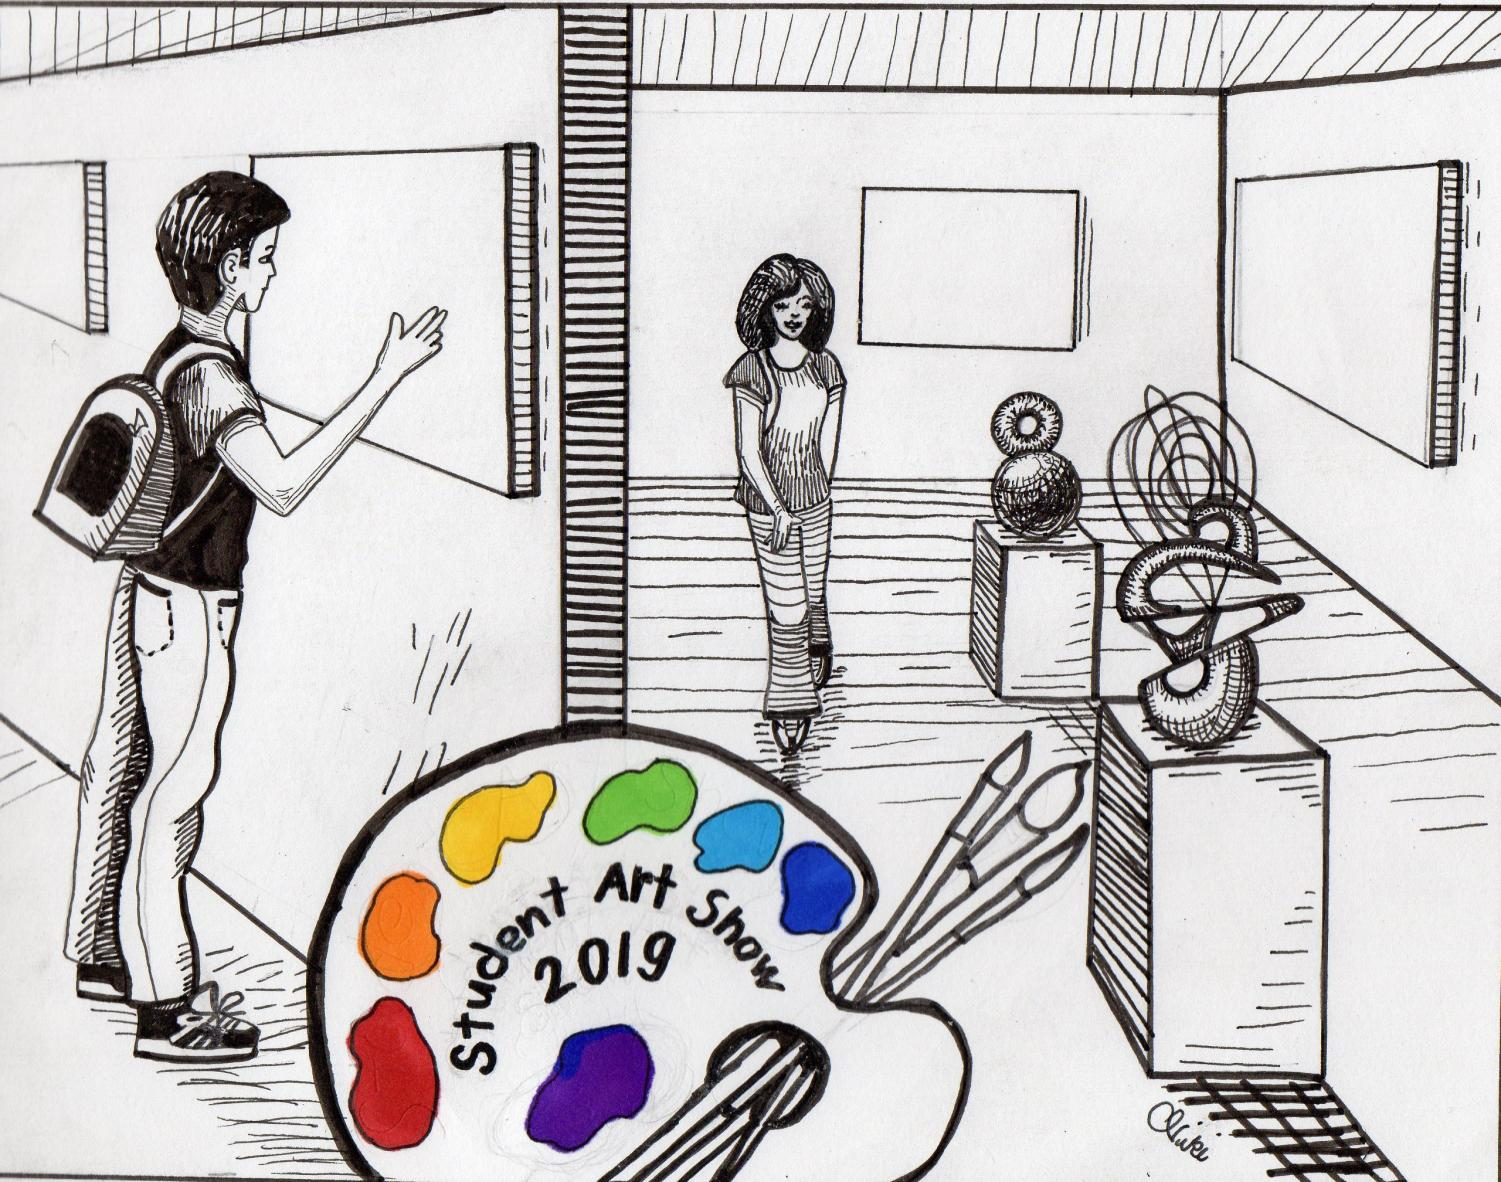 The Student Art Show begins on Monday, May 13 to Thursday, May 30 at El Camino College Art Gallery. The illustration will not be a part of the showcase. Photo credit: Nicoleene Yunker